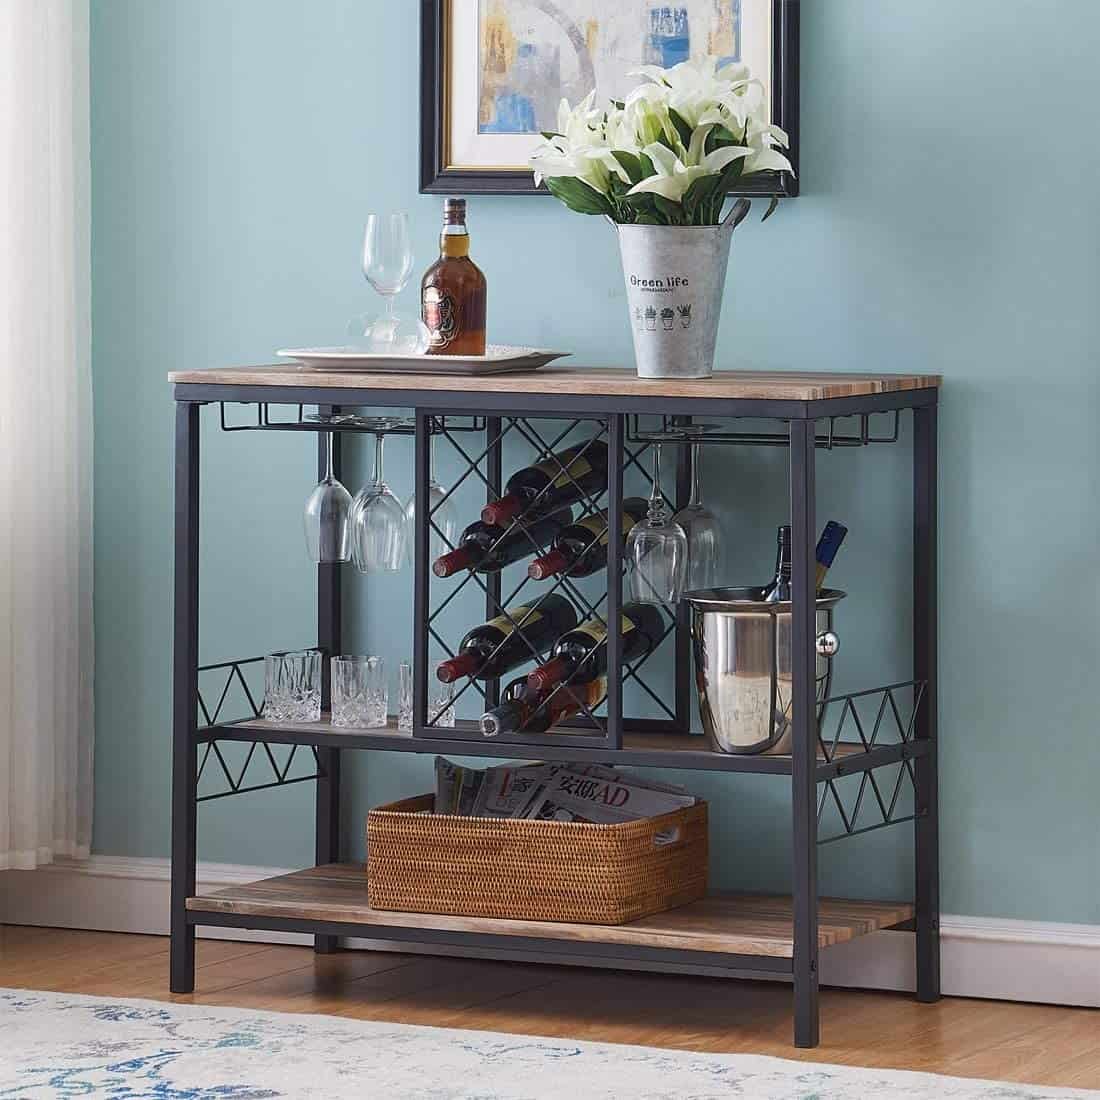 OK Furniture Industrial Wine Rack Table with Glass Holder Wine Bar Cabinet with Storage Brown min